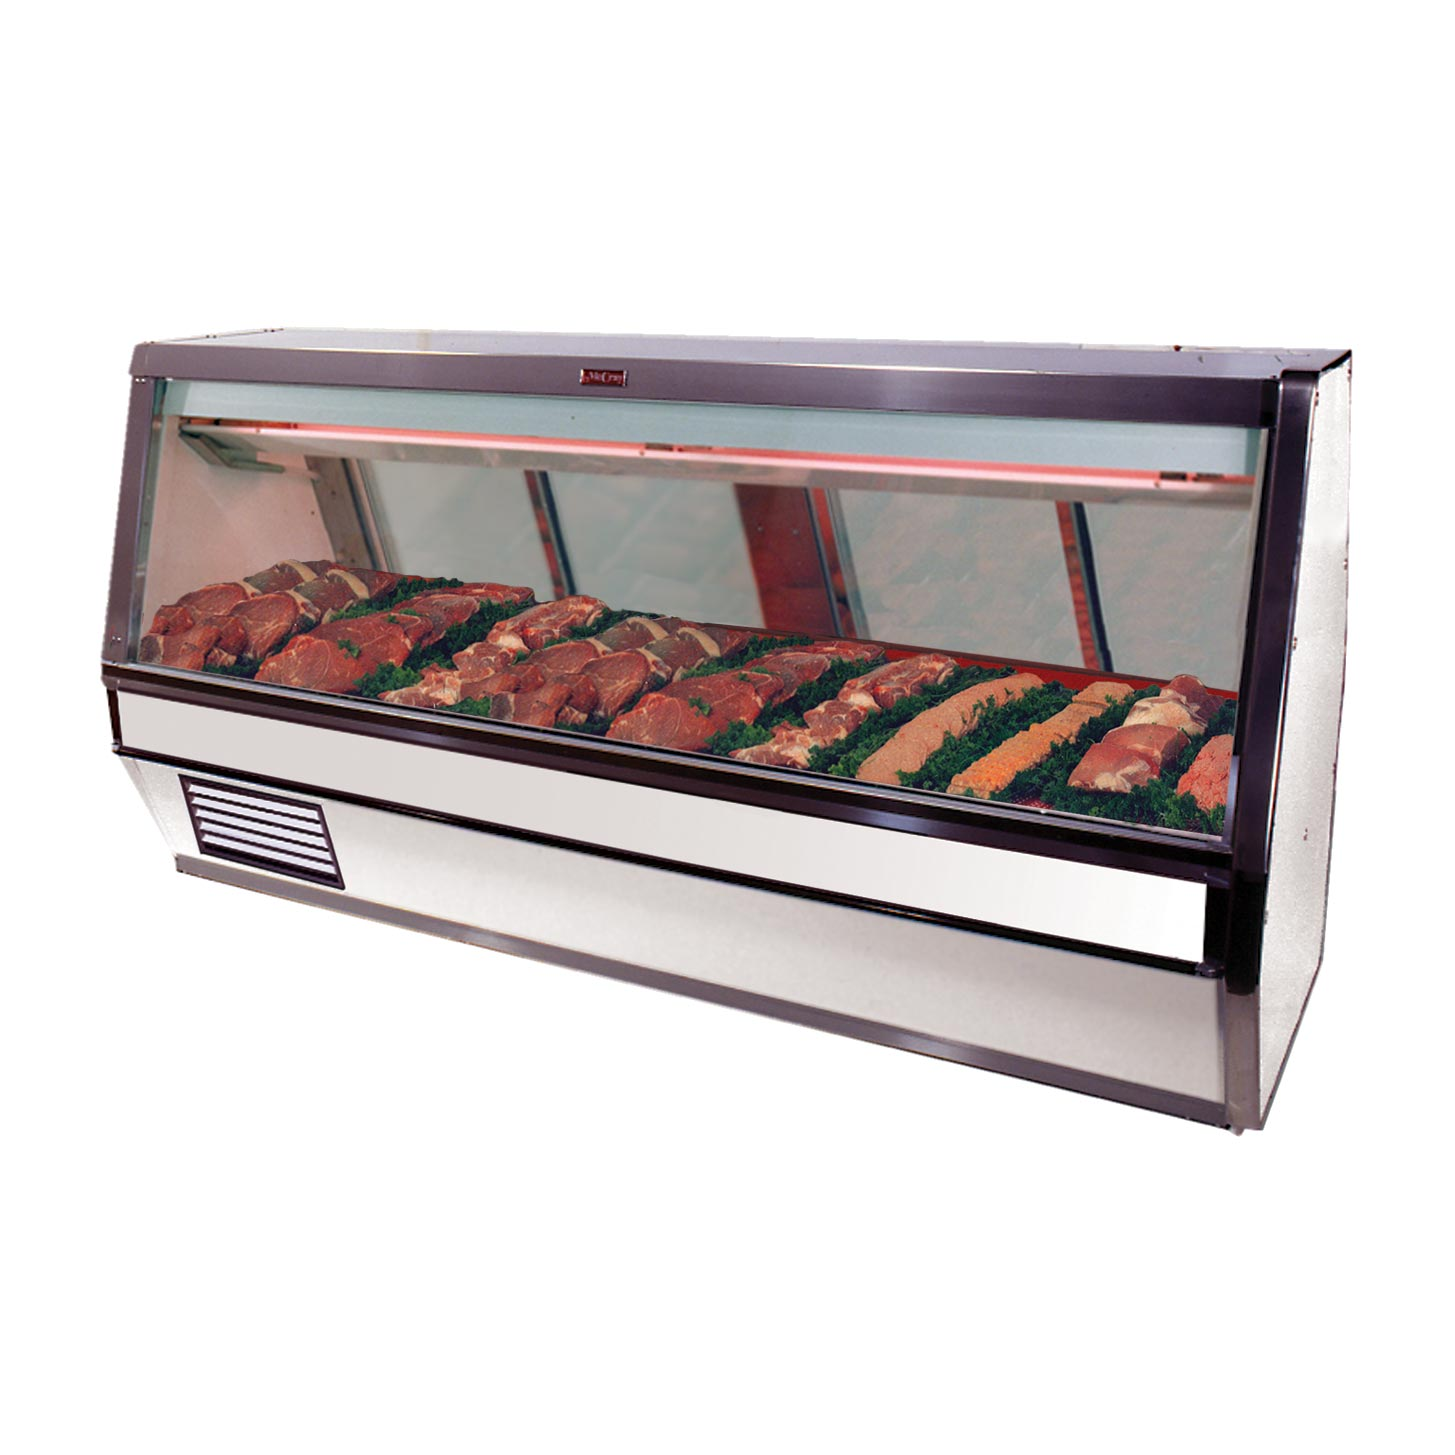 Howard-McCray R-CMS40E-6-LED display case, red meat deli